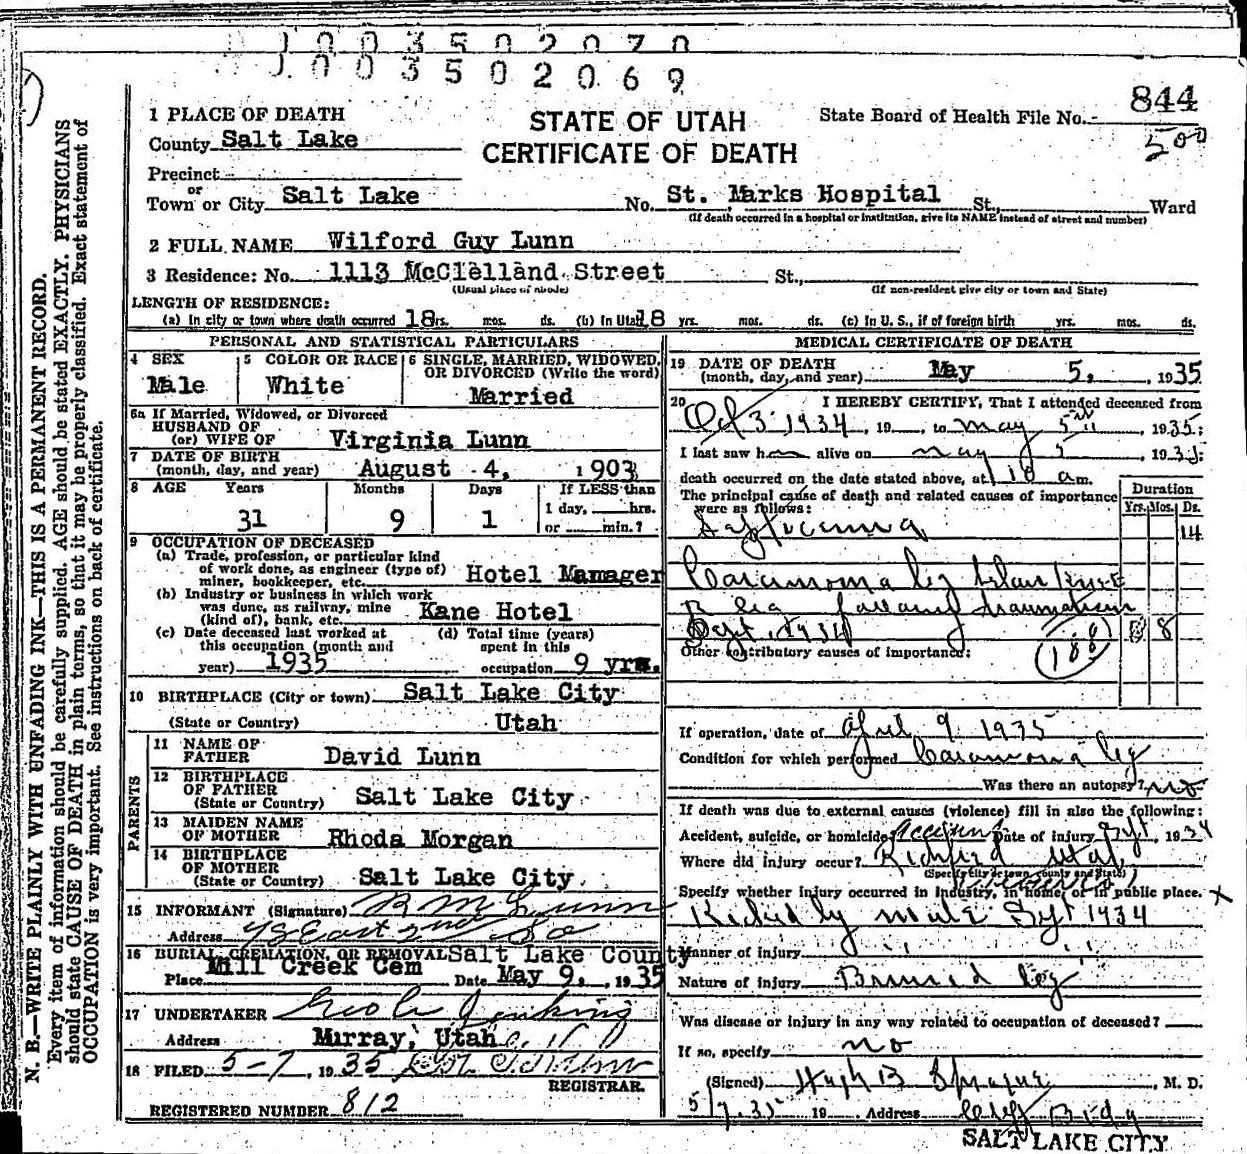 Day 3 Genealogy Pinterest Challenge Wilford Guy Lunn death certificate.  Guy was my mother's father and passed away when she was 8 years old.